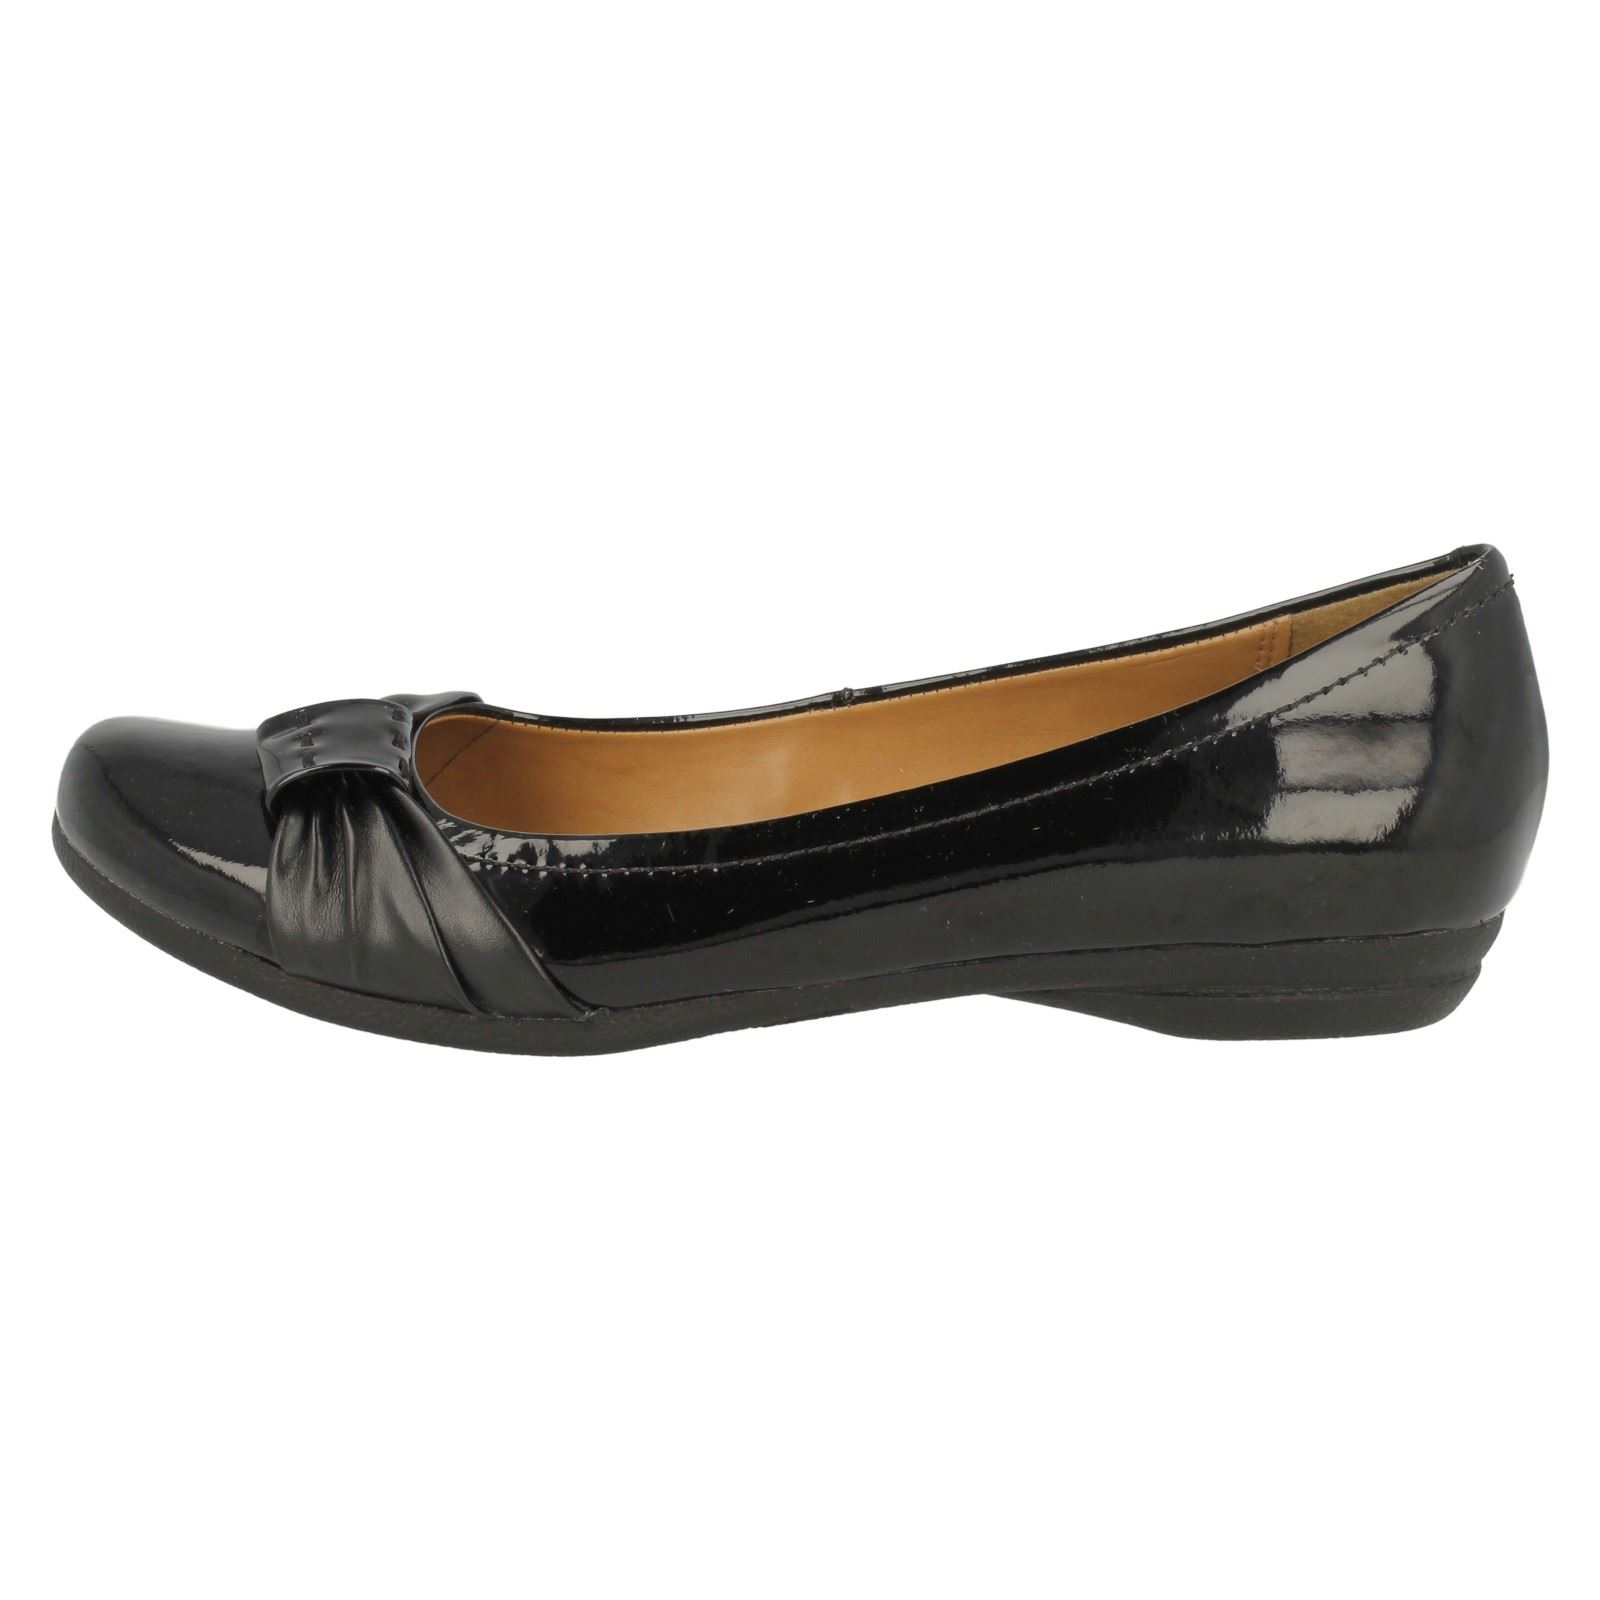 Ladies Clarks Flat Shoes Discovery Bay | EBay